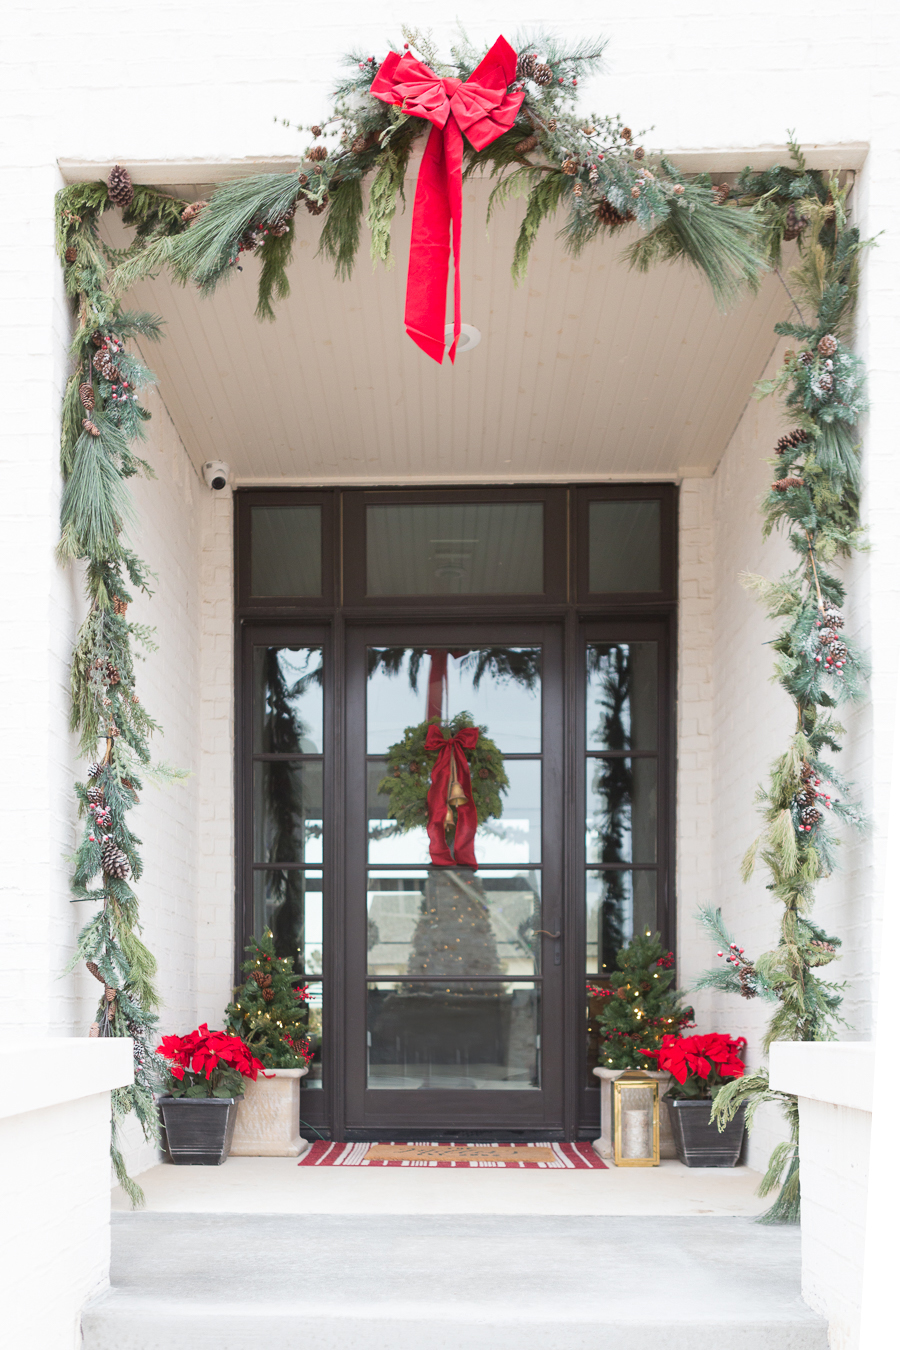 Holiday-Decor-Favorites-from-Home-Depot white brick exterior with fresh Christmas garland and red bows Christmas wreath with gold bells and a red bow silk poinsettias in a copper pot on a front porch black glass front door